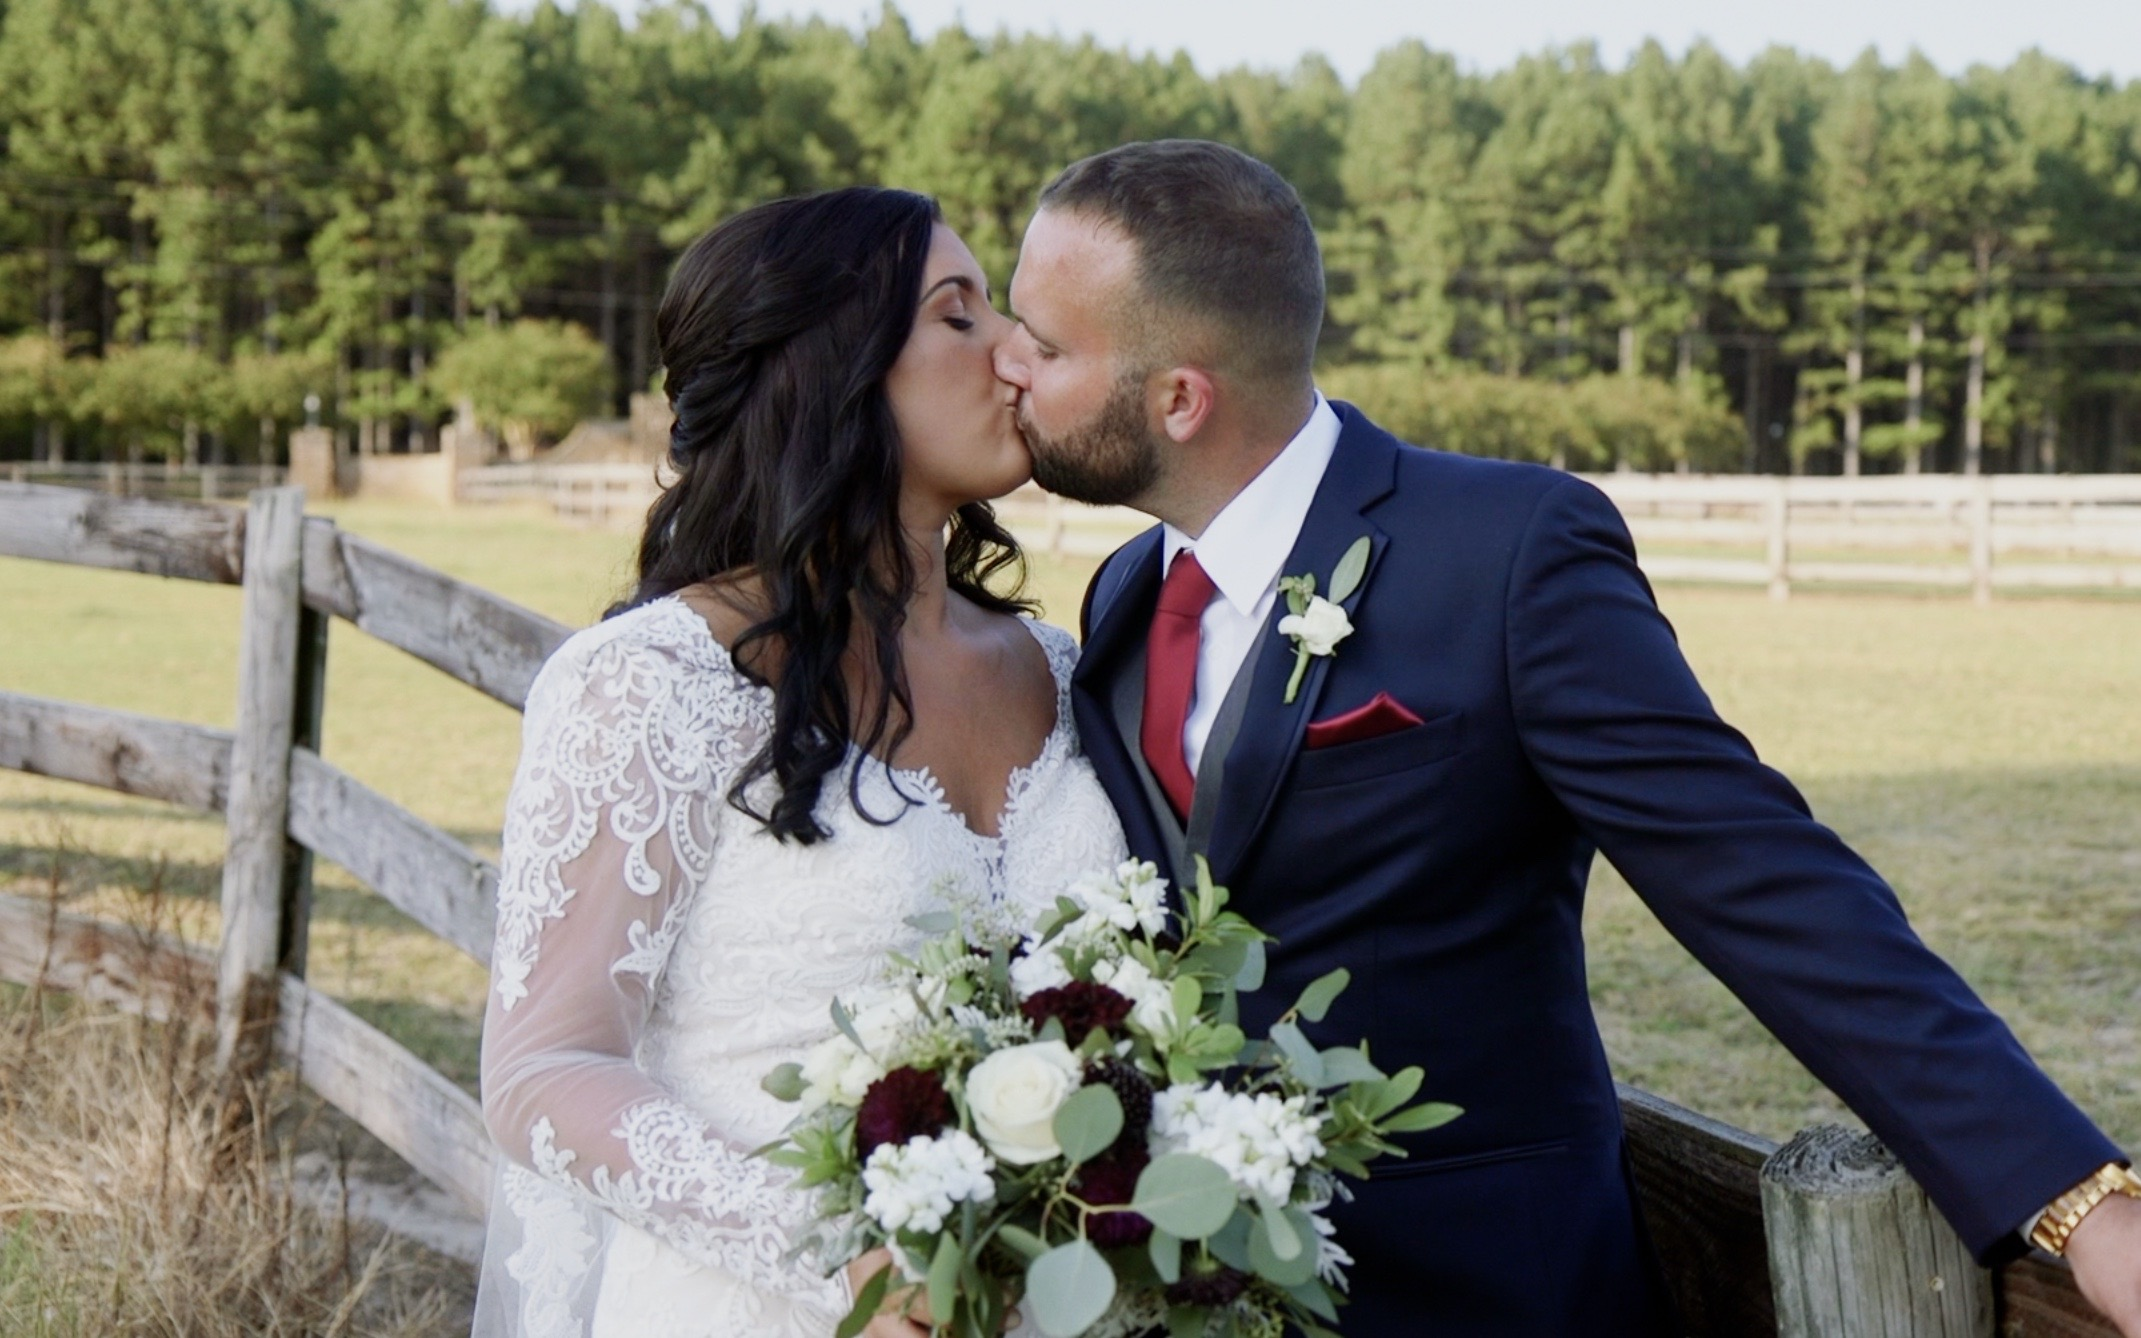 Brittany + Brendan | Raleigh, North Carolina | The Pavilion at Carriage Farm